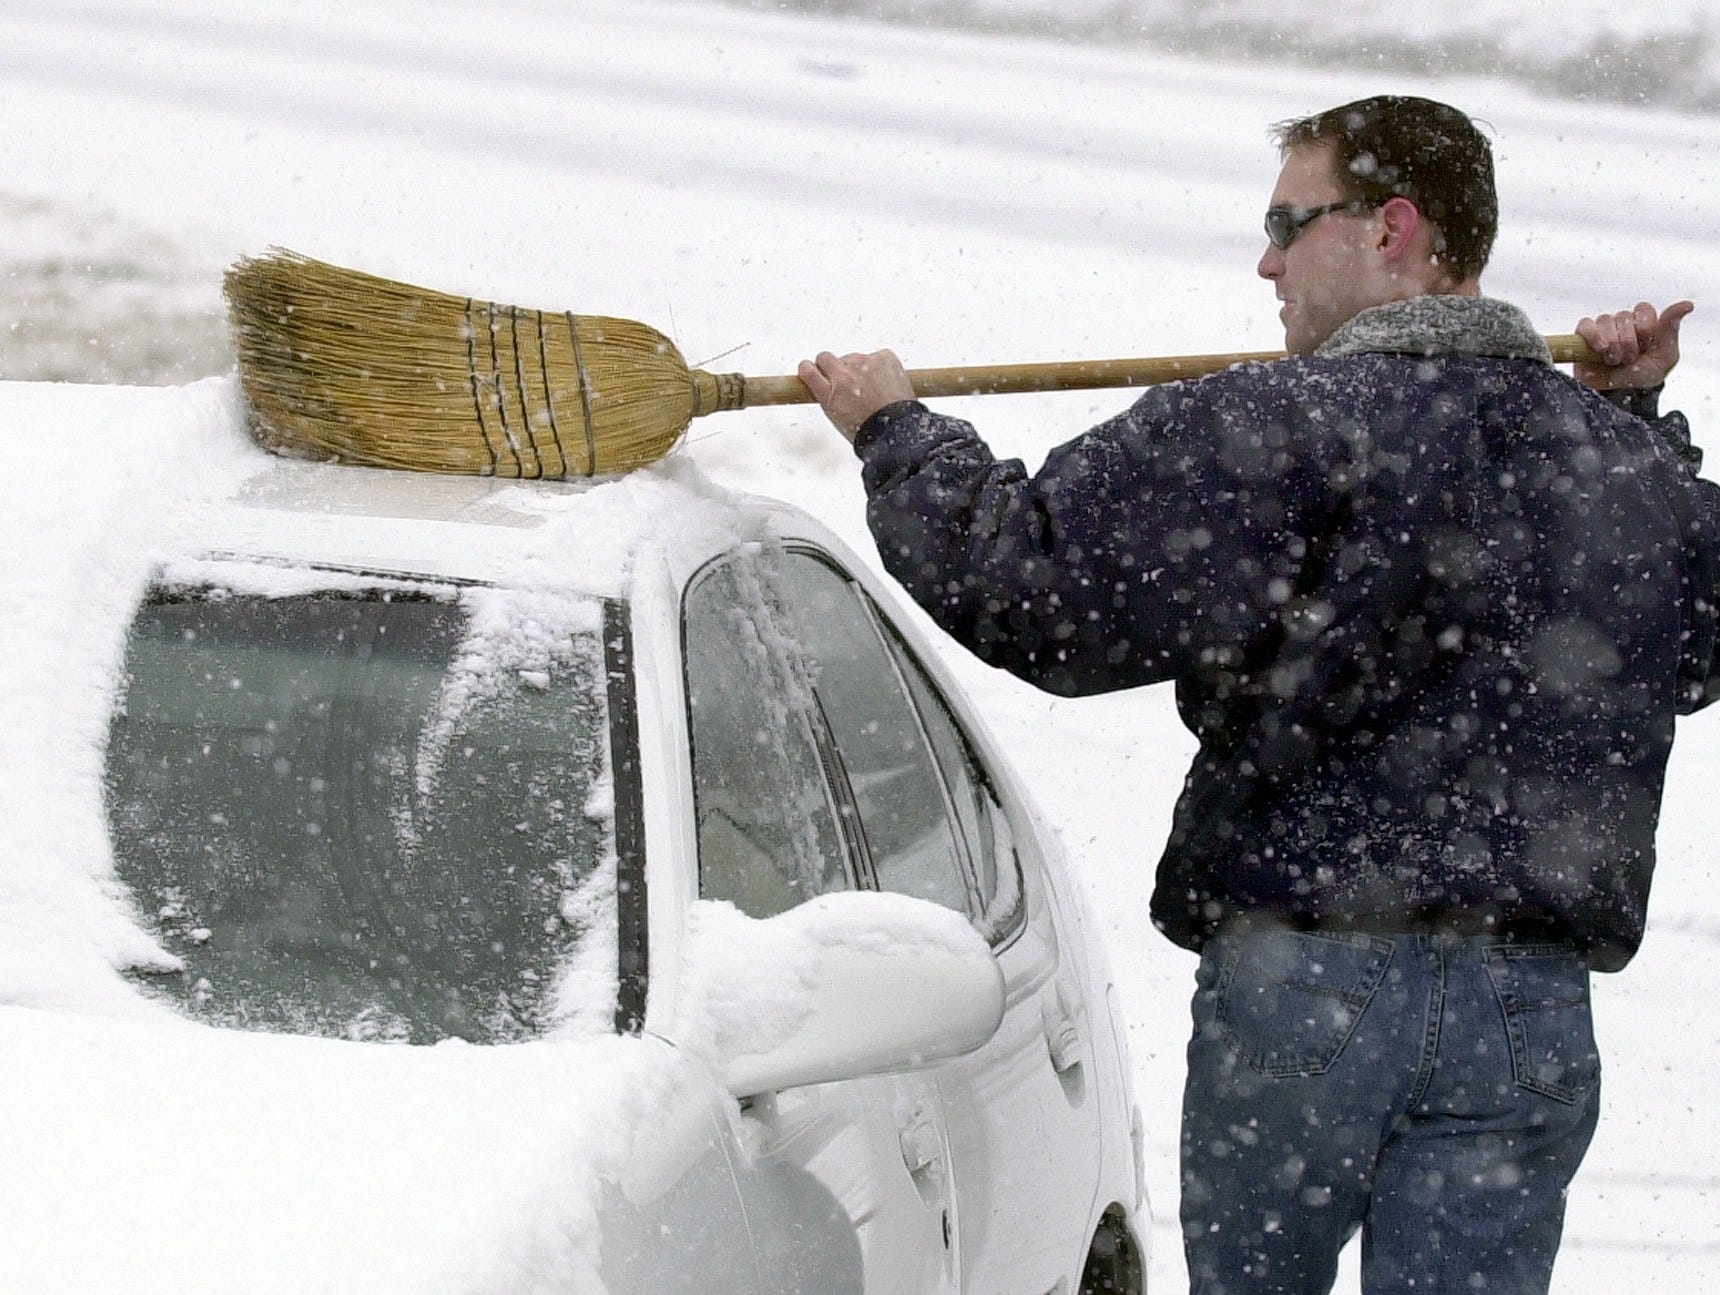 Jeff Hull with Thrifty Car Rental on Poinsett Hgwy makes a clean sweep of snow from one of the cars on his lot January 3, 2002.